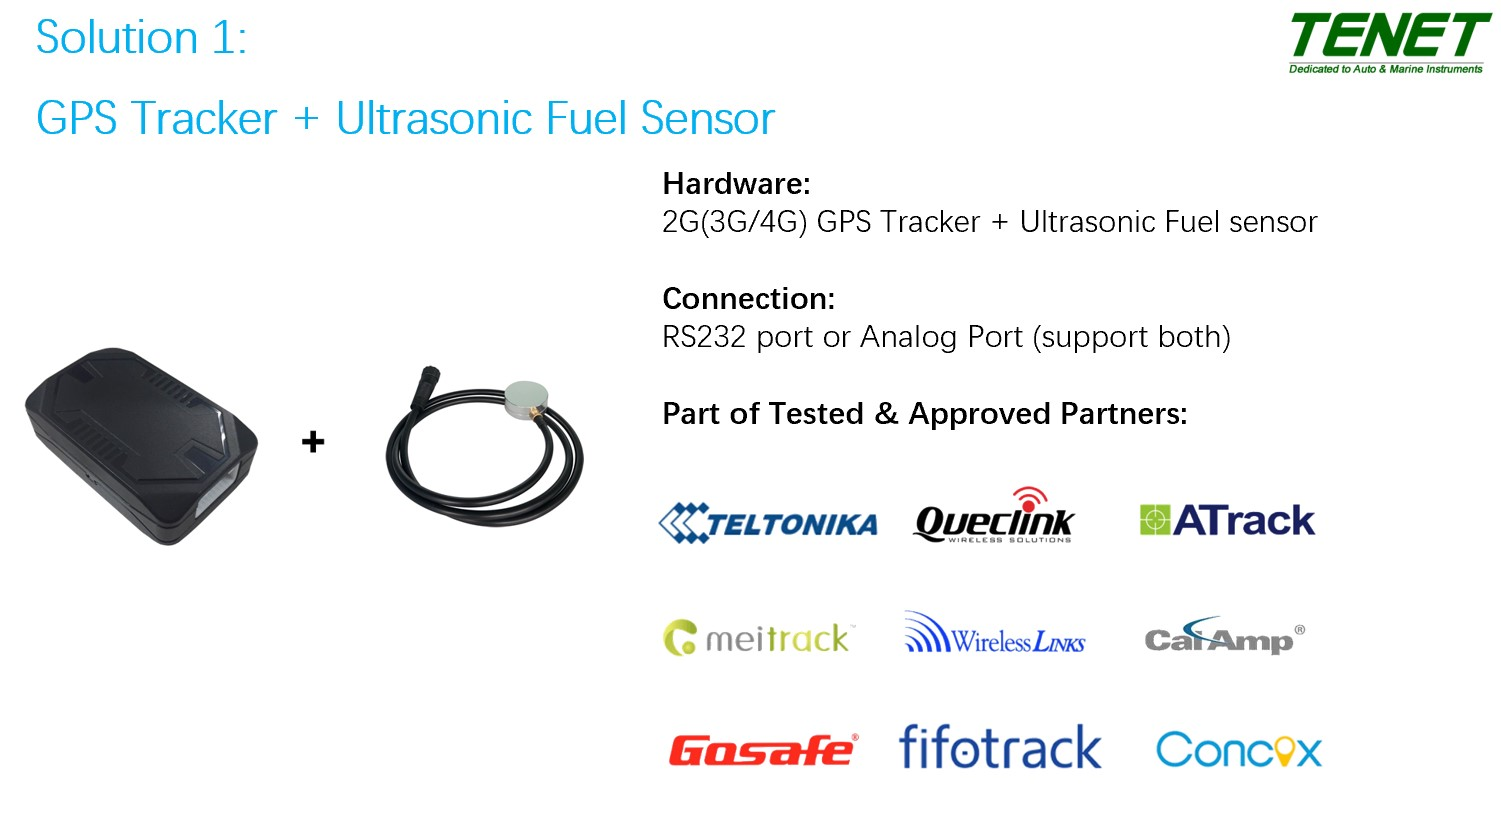 UL202_Ultrasonic_Fuel_sensor03.jpg